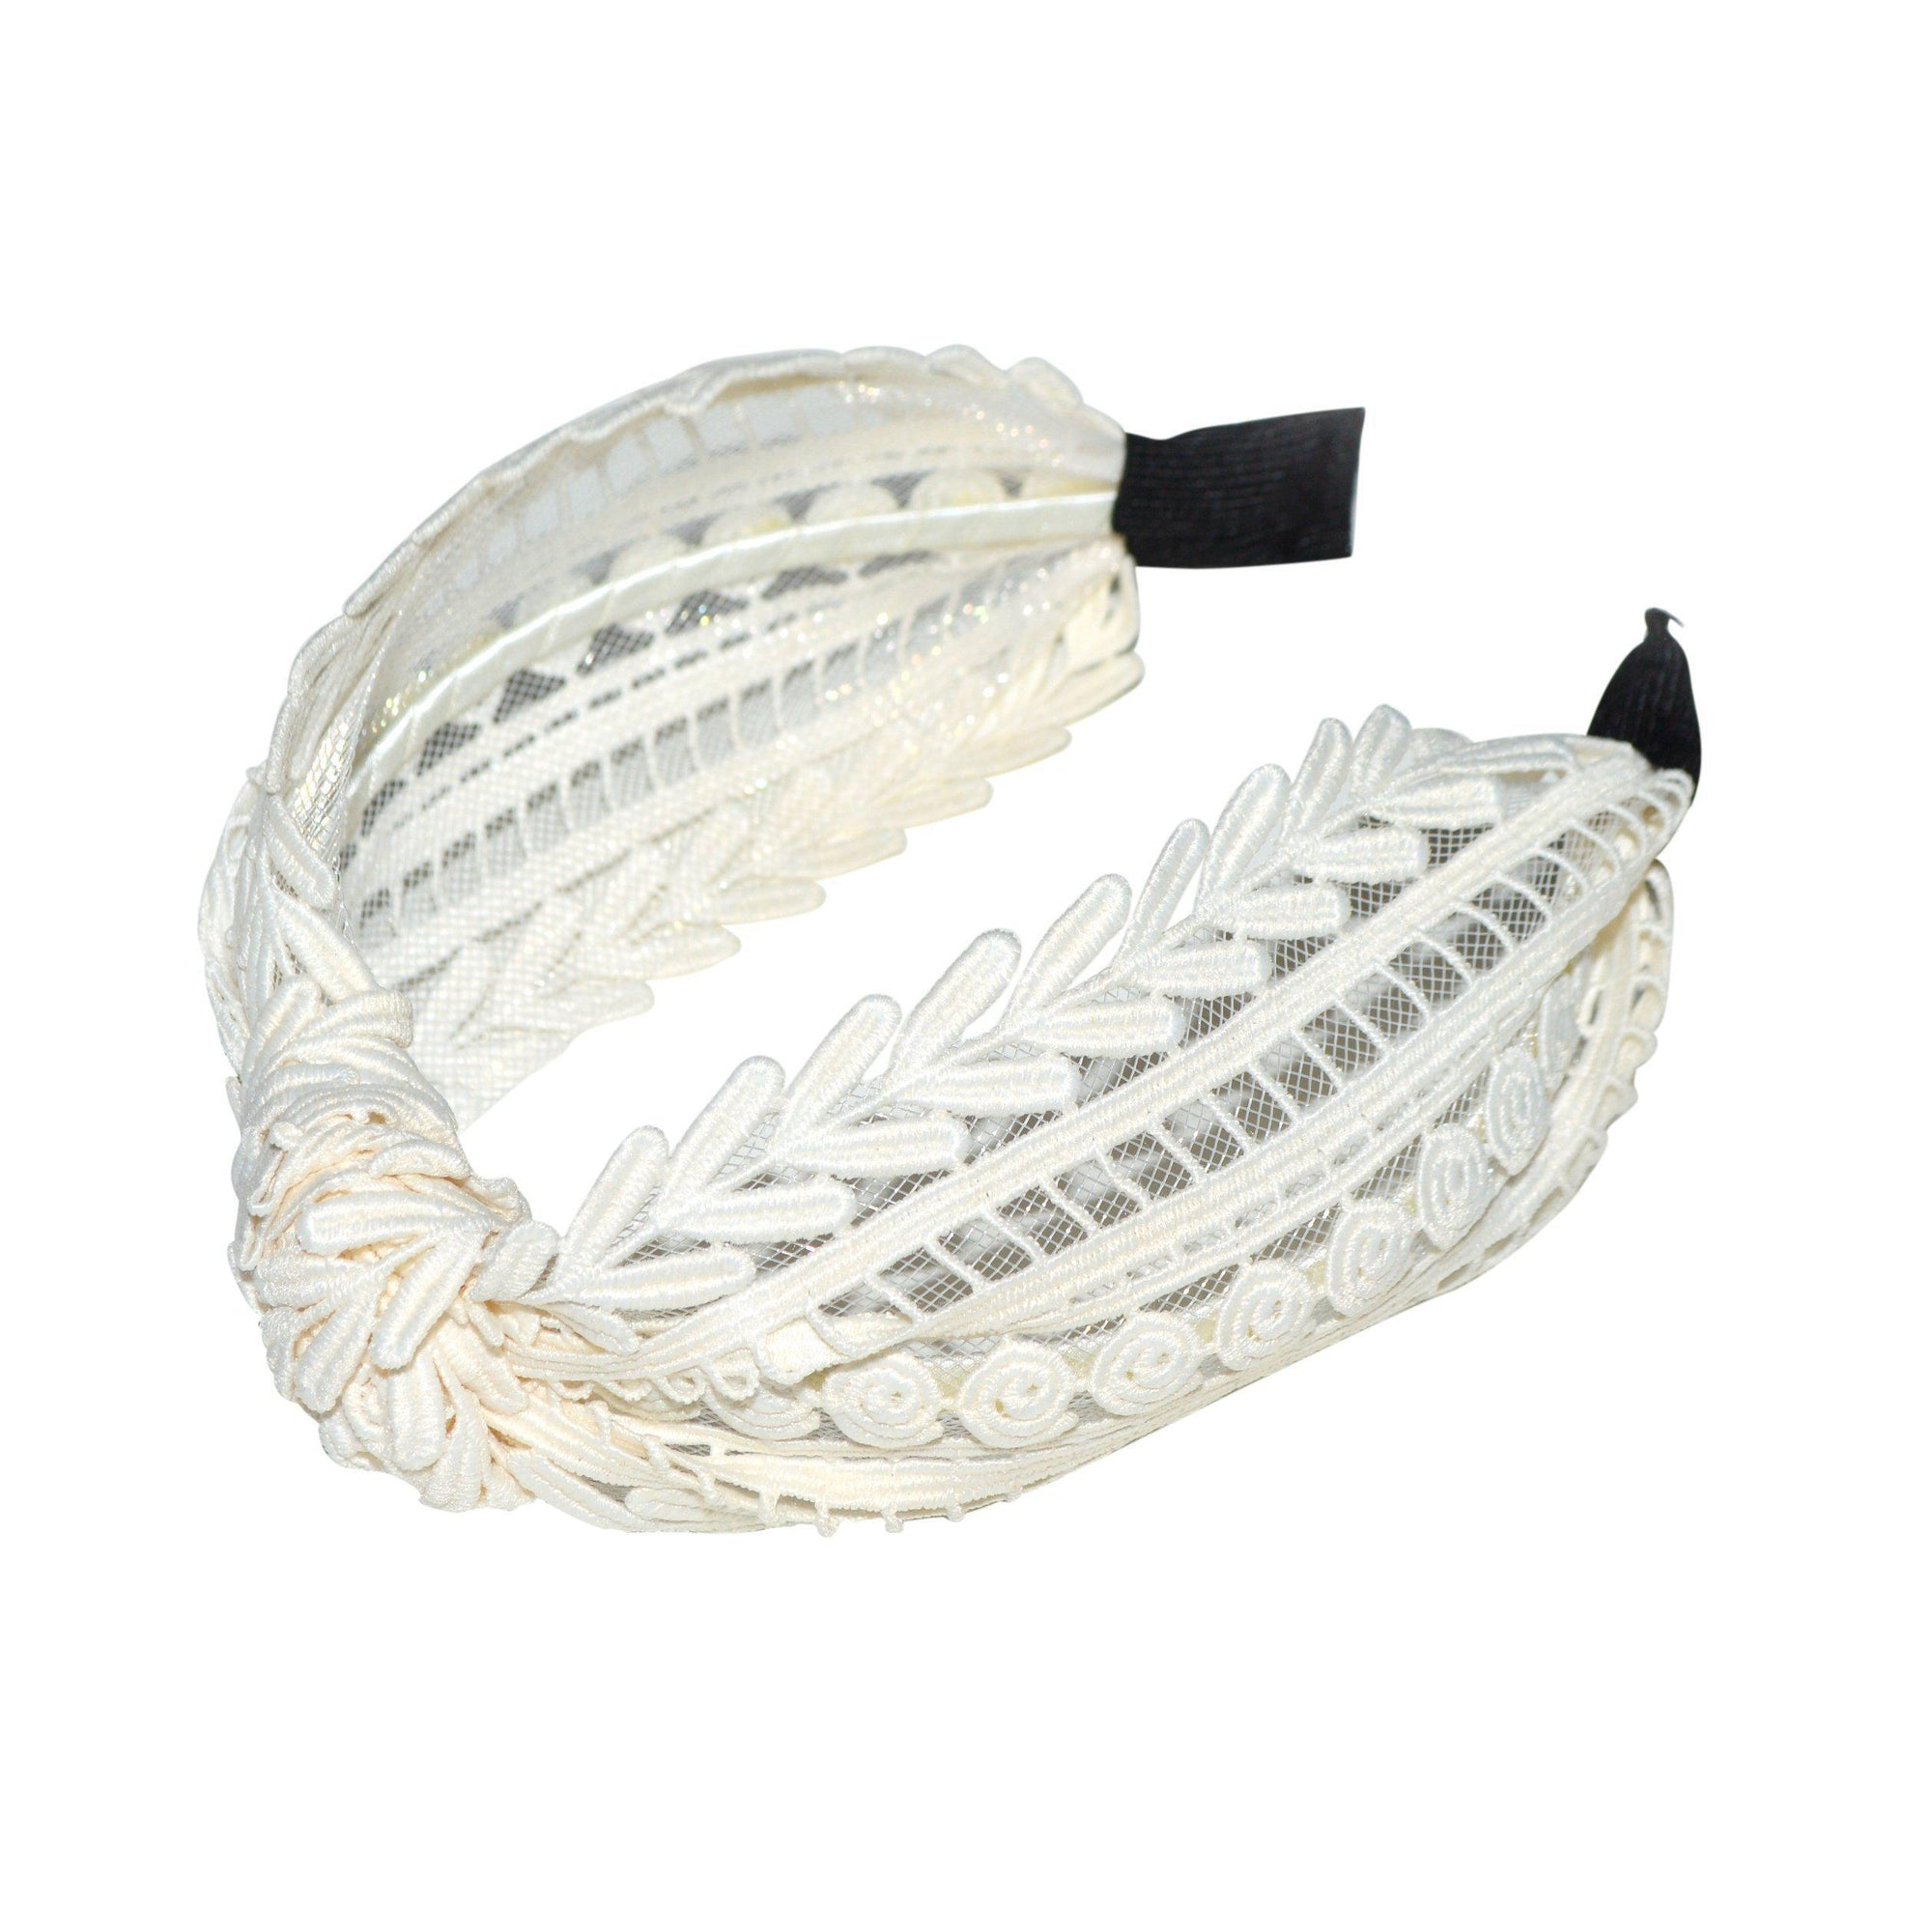 Handmade Lace Headband-Headbands-Tegen Accessories-White-Tegen Accessories